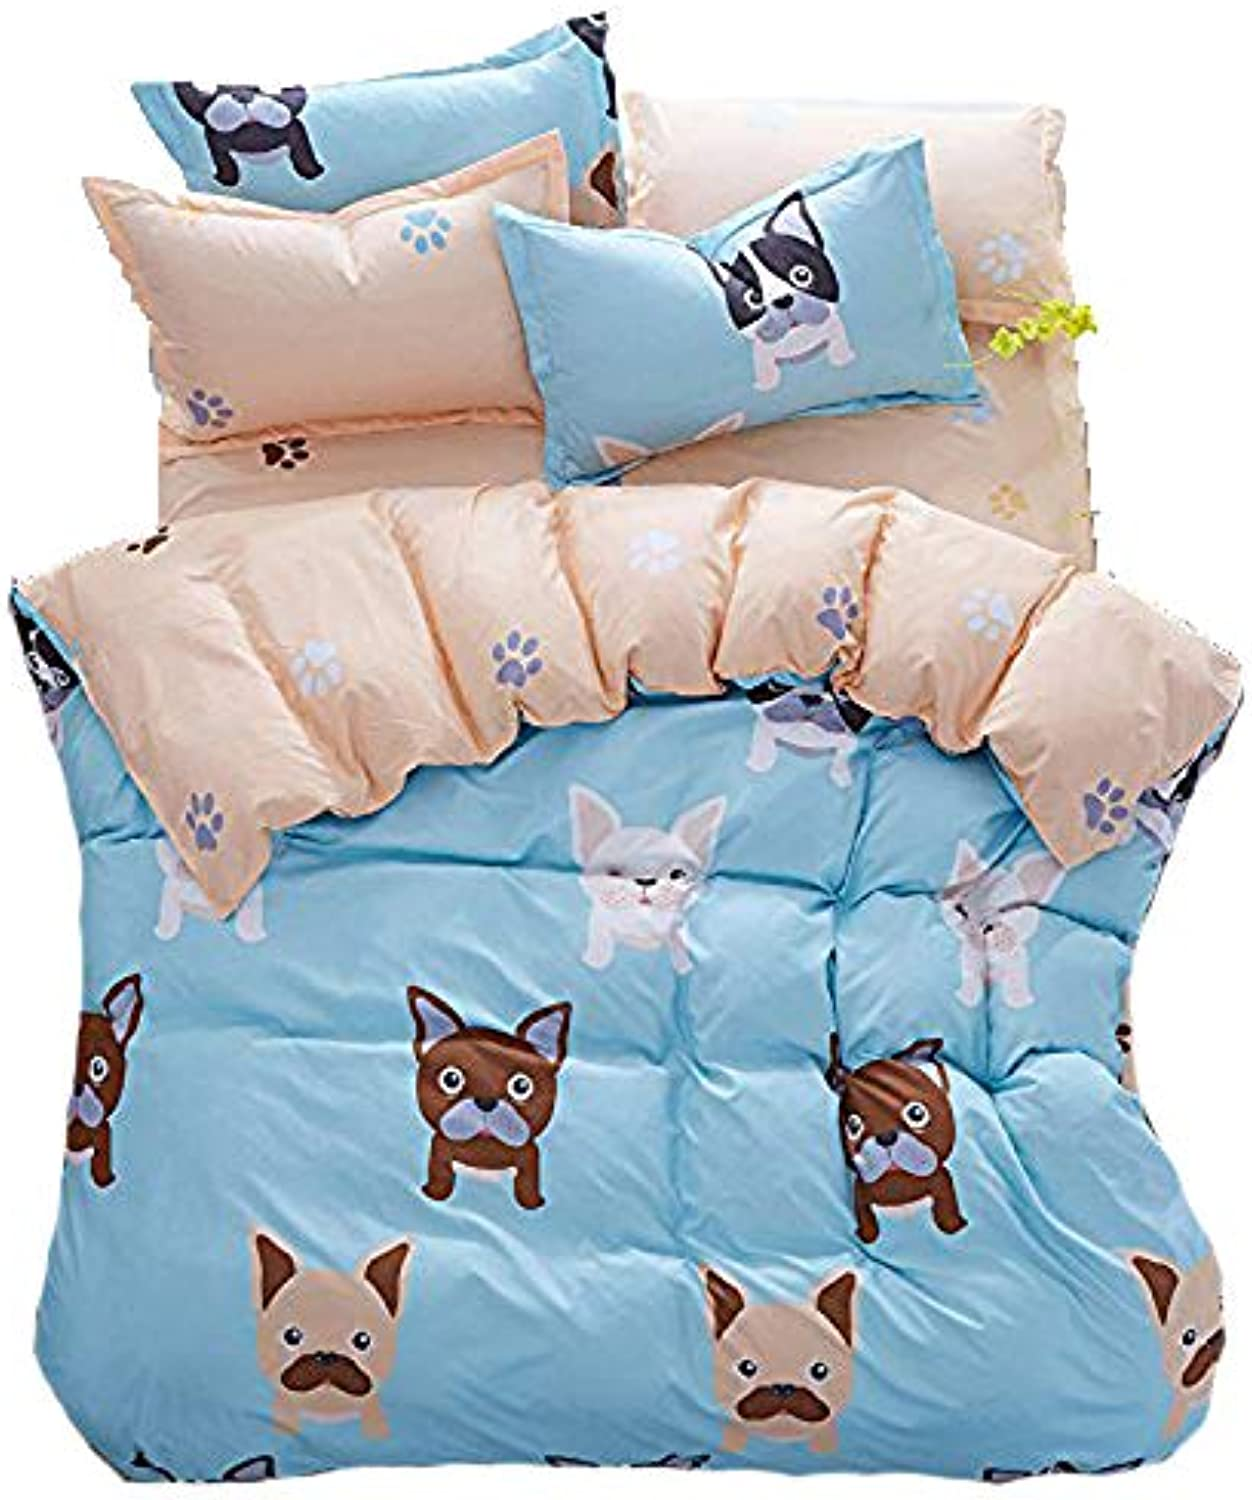 4pcs Kids Bedding Sets Bedroom Set With One Duvet Cover Without Comforter One Flat Sheet Two Pillowcases With Twin Full Queen Size Cute Dog Design (Full, Cute Dog)